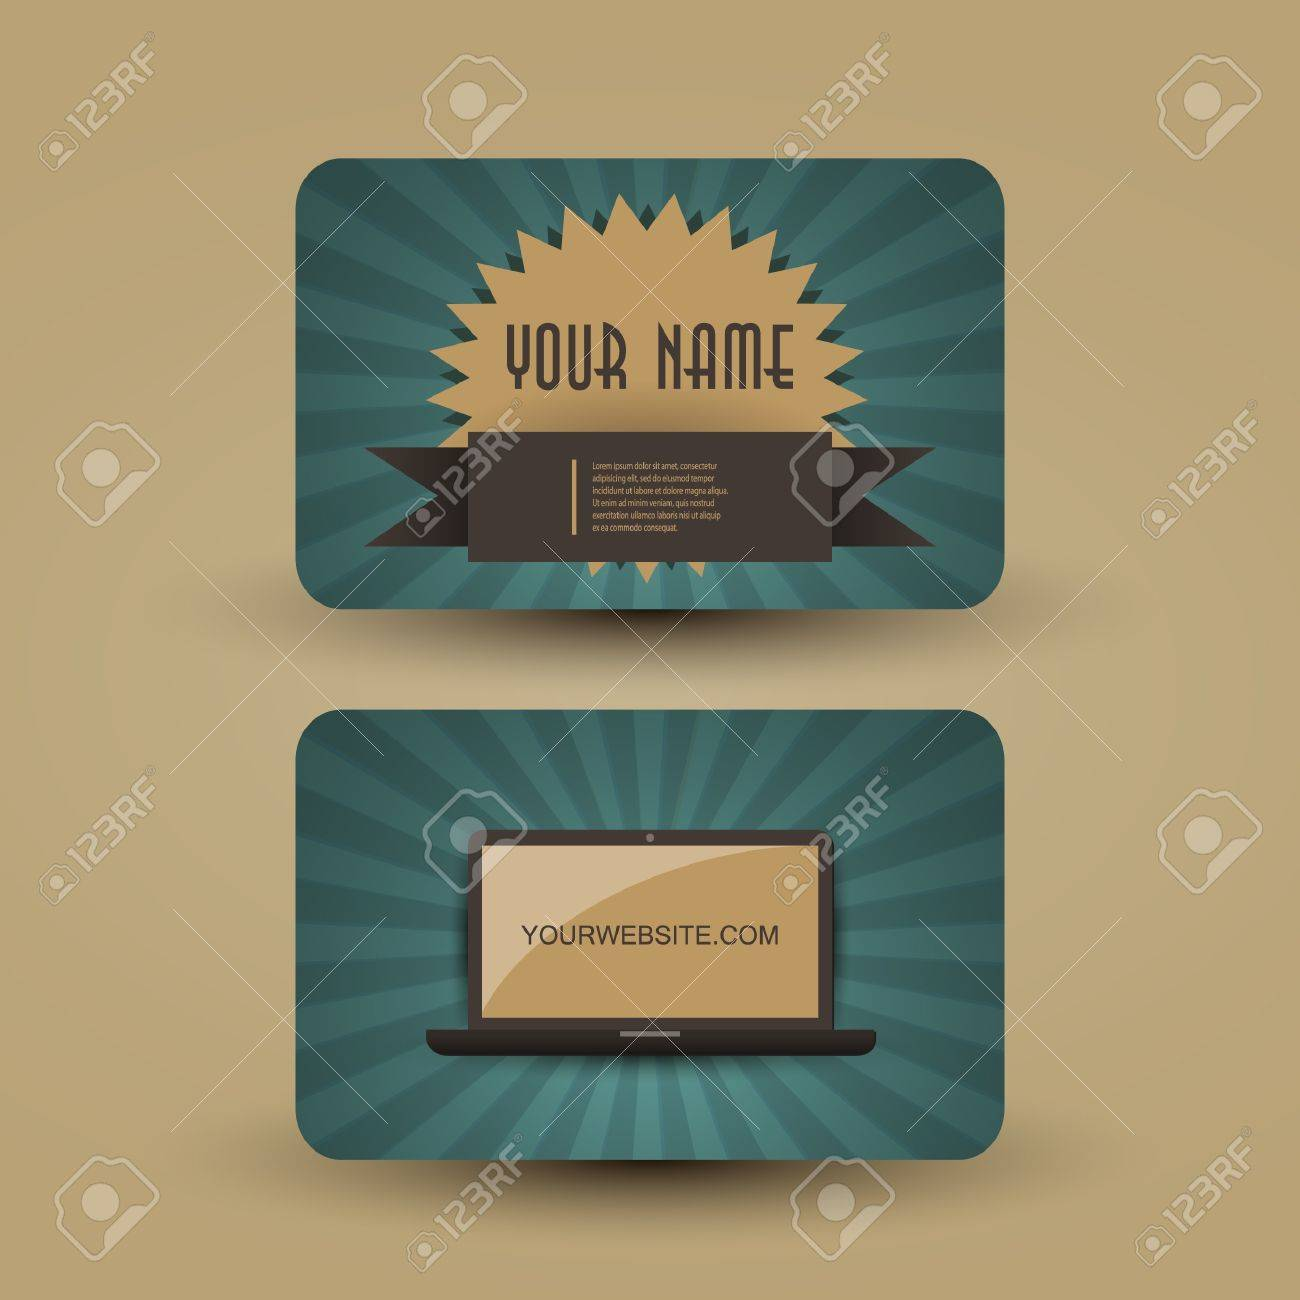 Retro business card template royalty free cliparts vectors and retro business card template stock vector 13967185 accmission Image collections